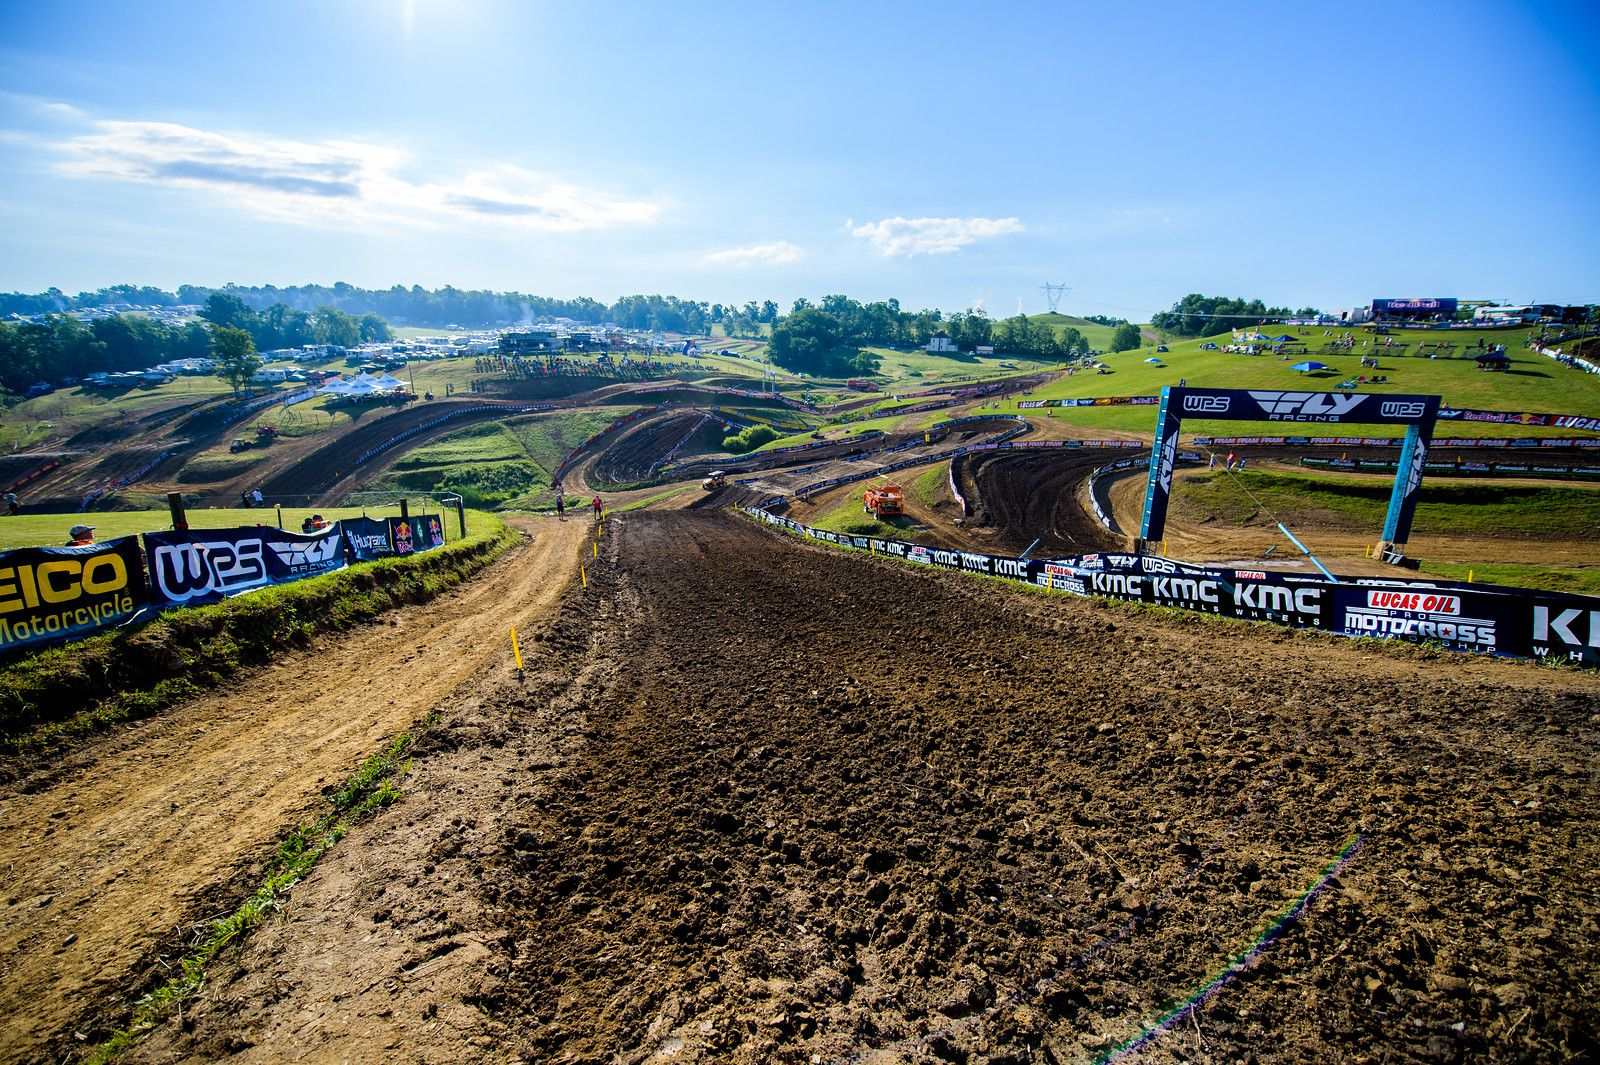 High Point MX (With images) Motocross, Motosport, Dirt bikes